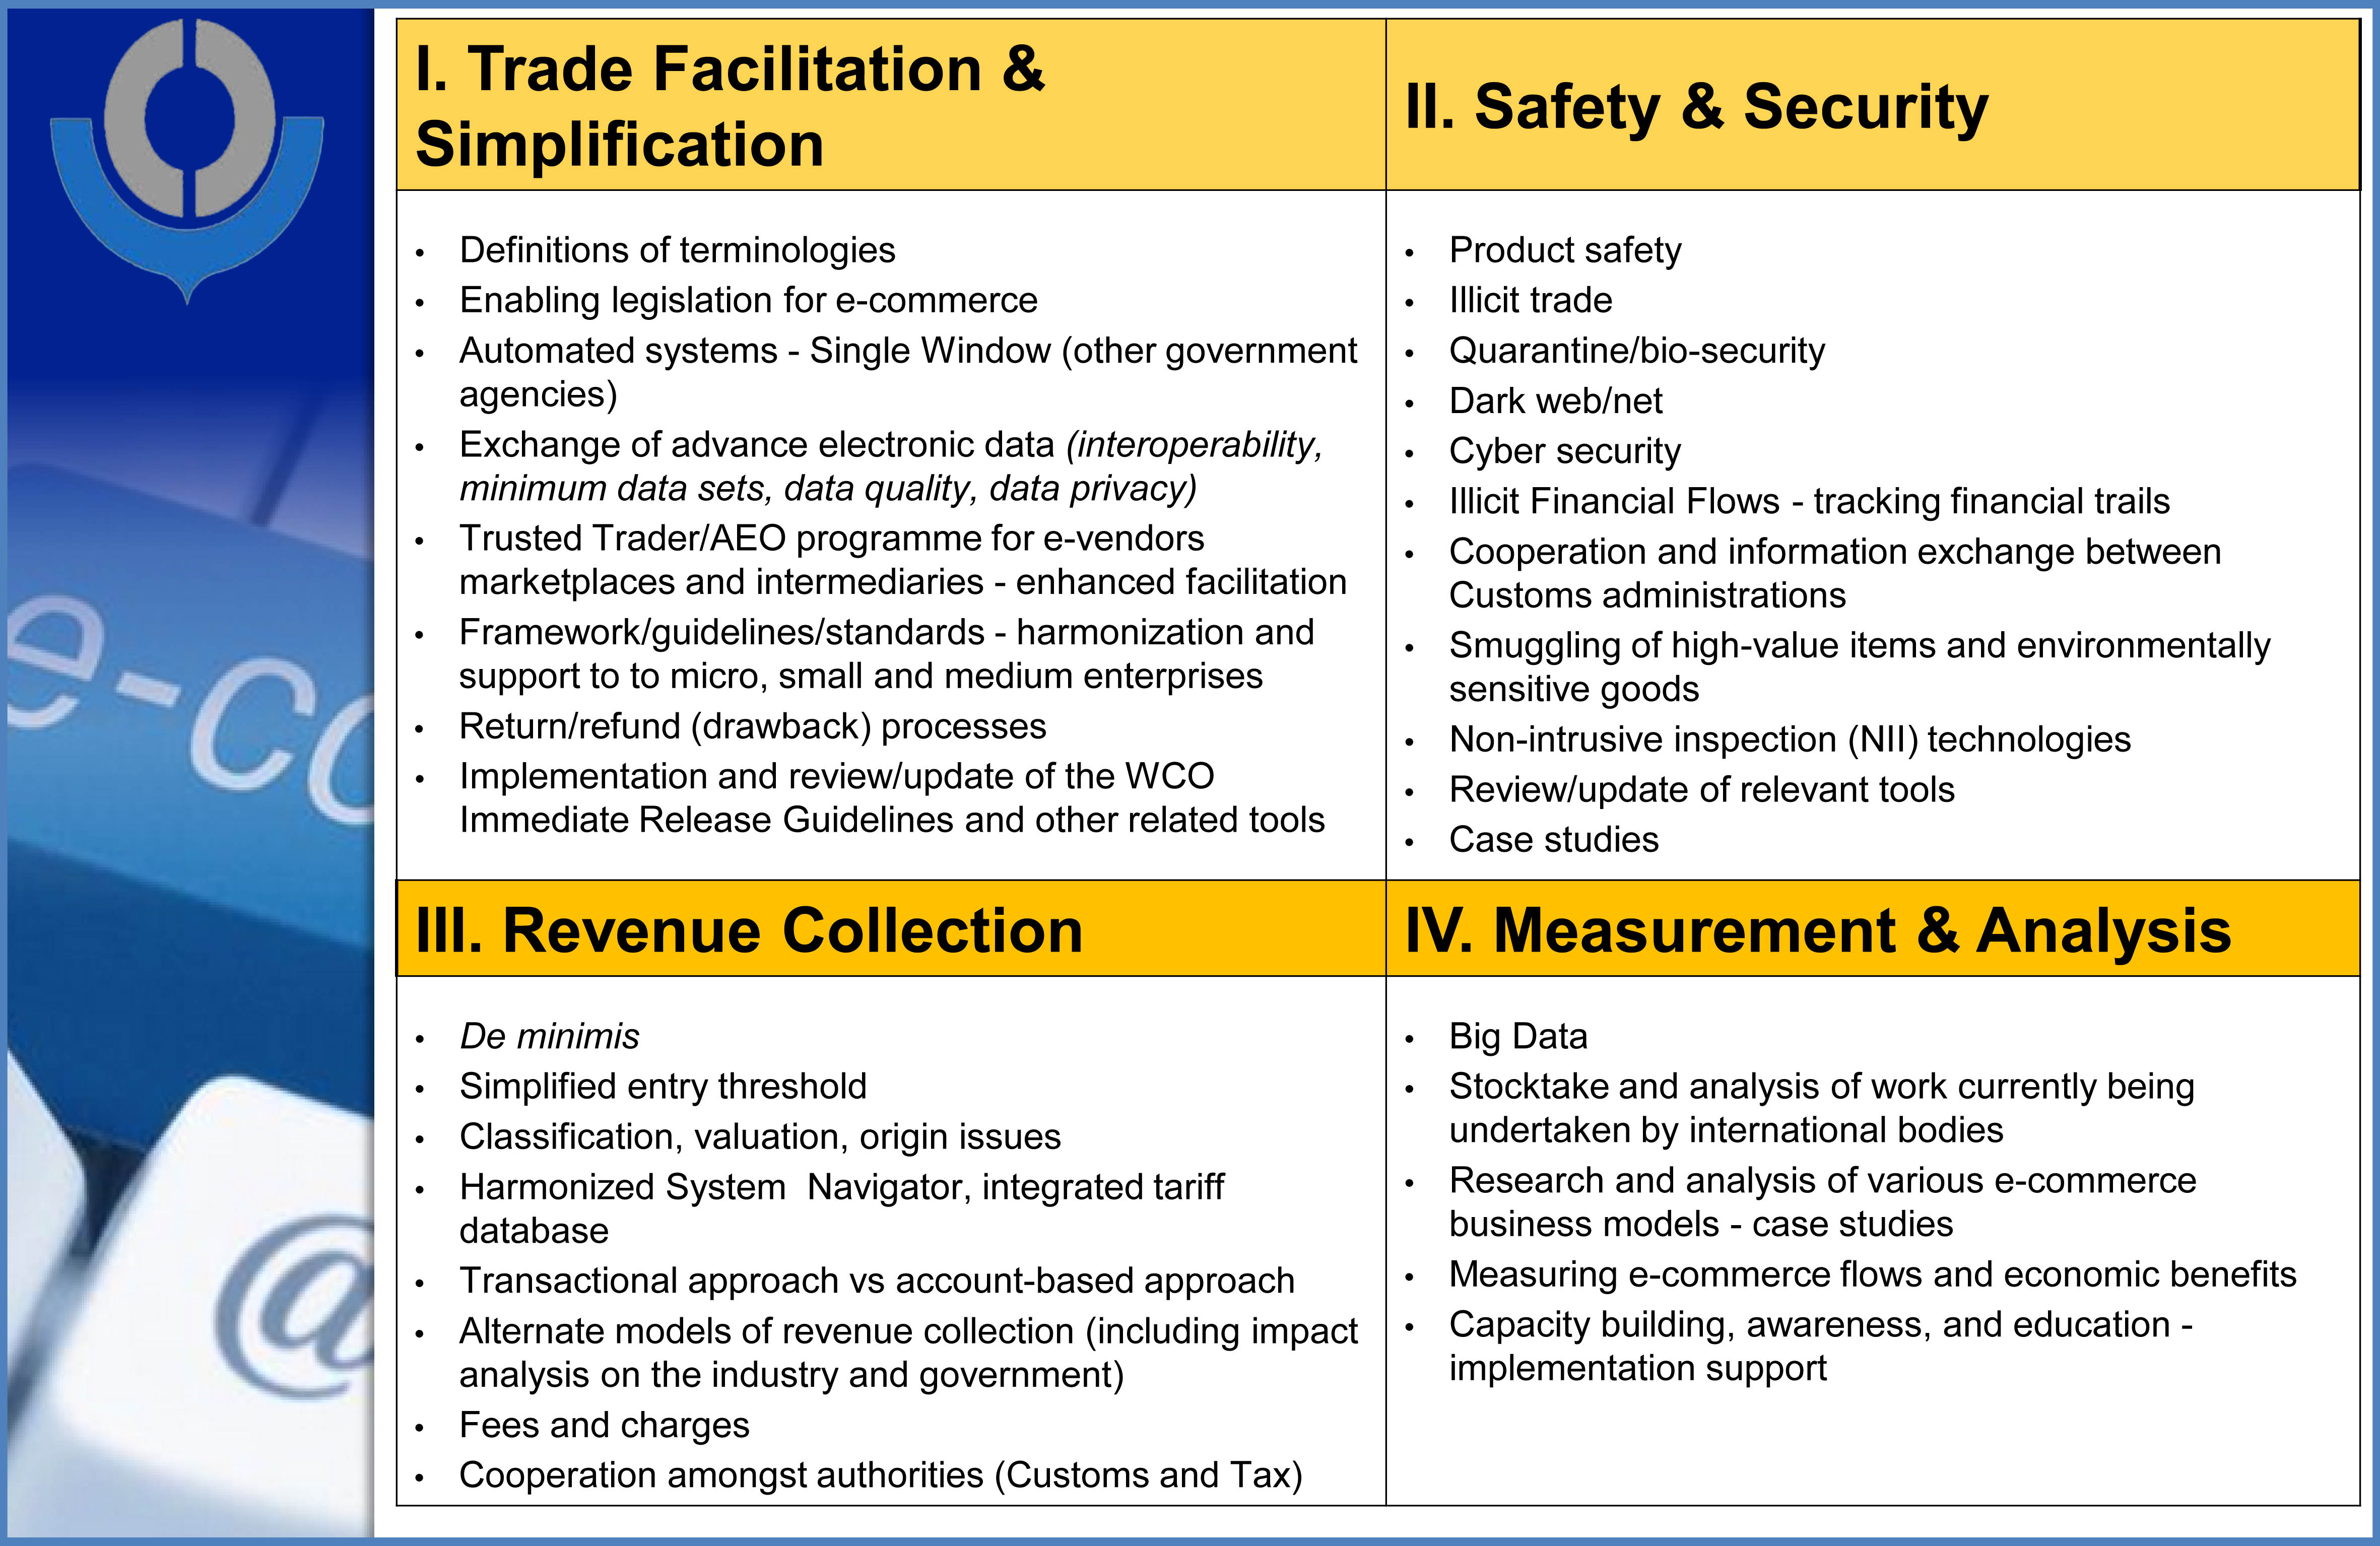 World Customs Organization Data Security Definitions E Commerce Working Group Four Key Areas Of Work